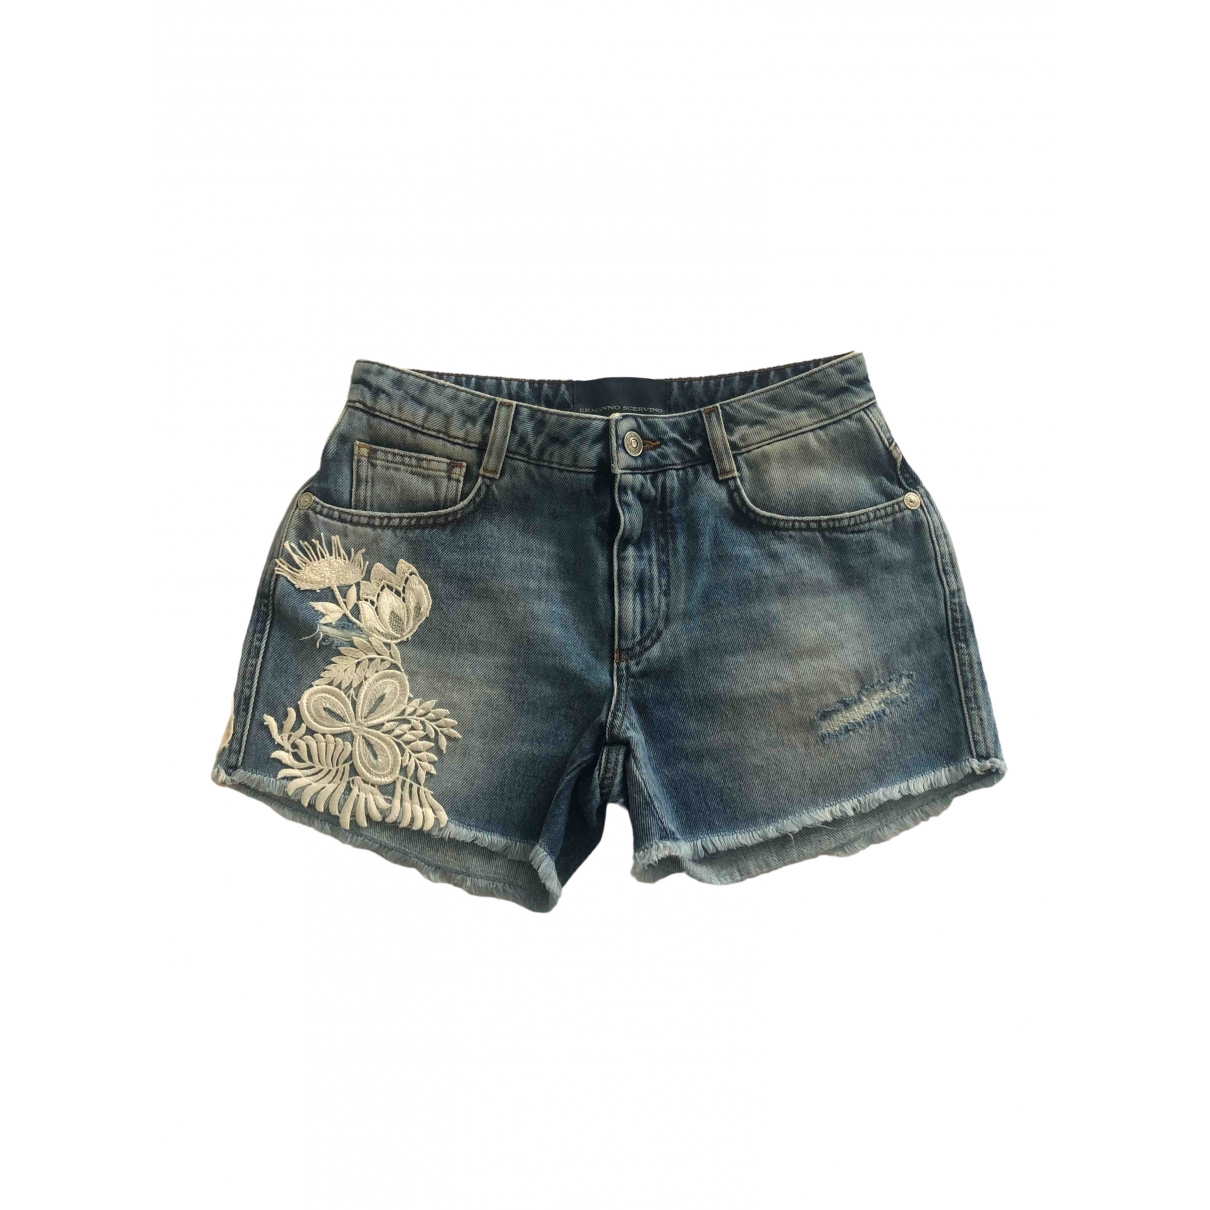 Ermanno Scervino \N Denim - Jeans Shorts for Women 38 IT